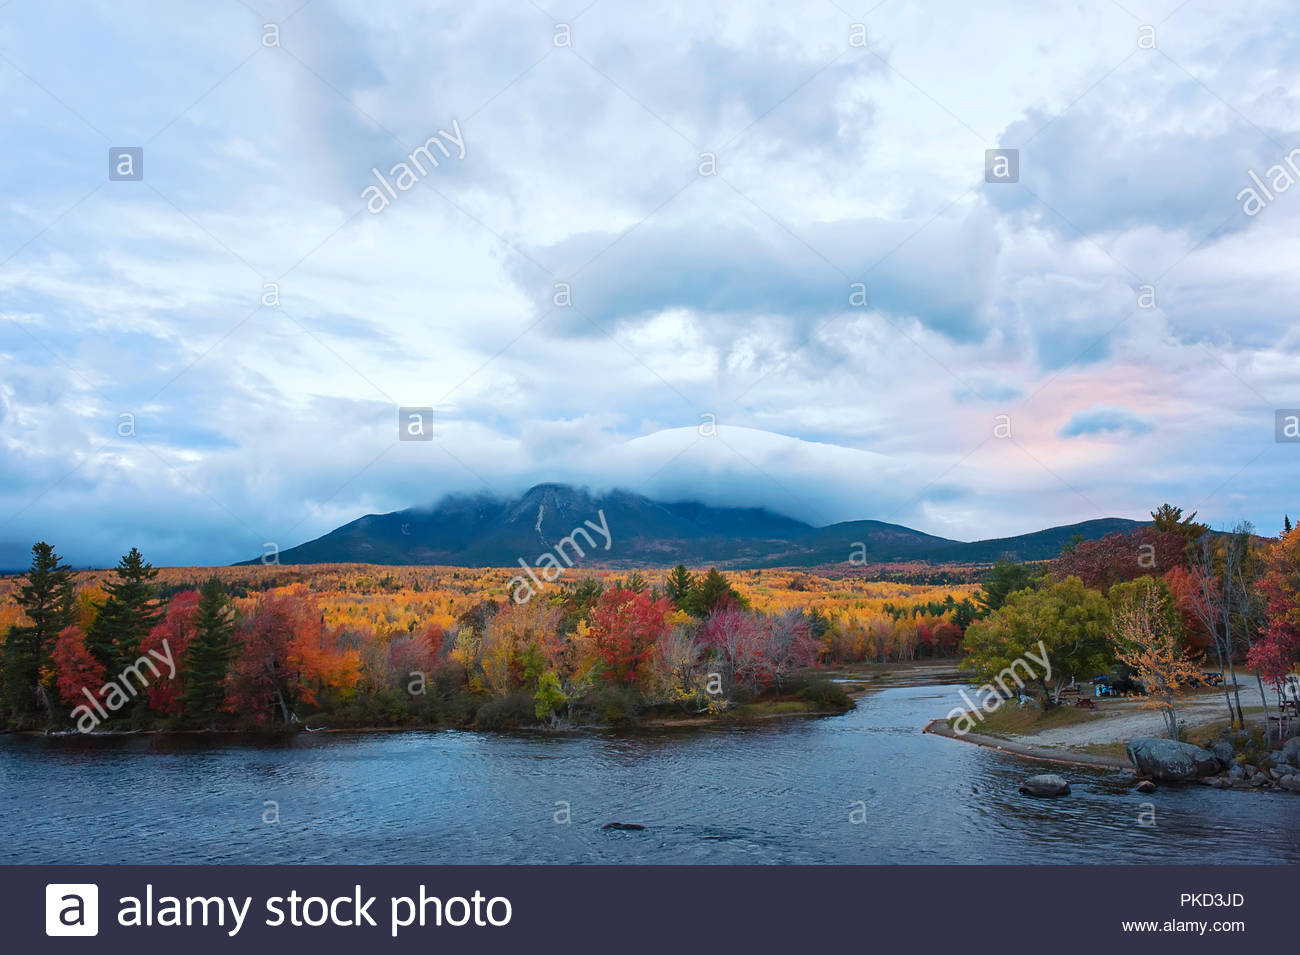 mount katahdin surrounded in clouds with bright fall foliage and lake in the foreground - Stock Image